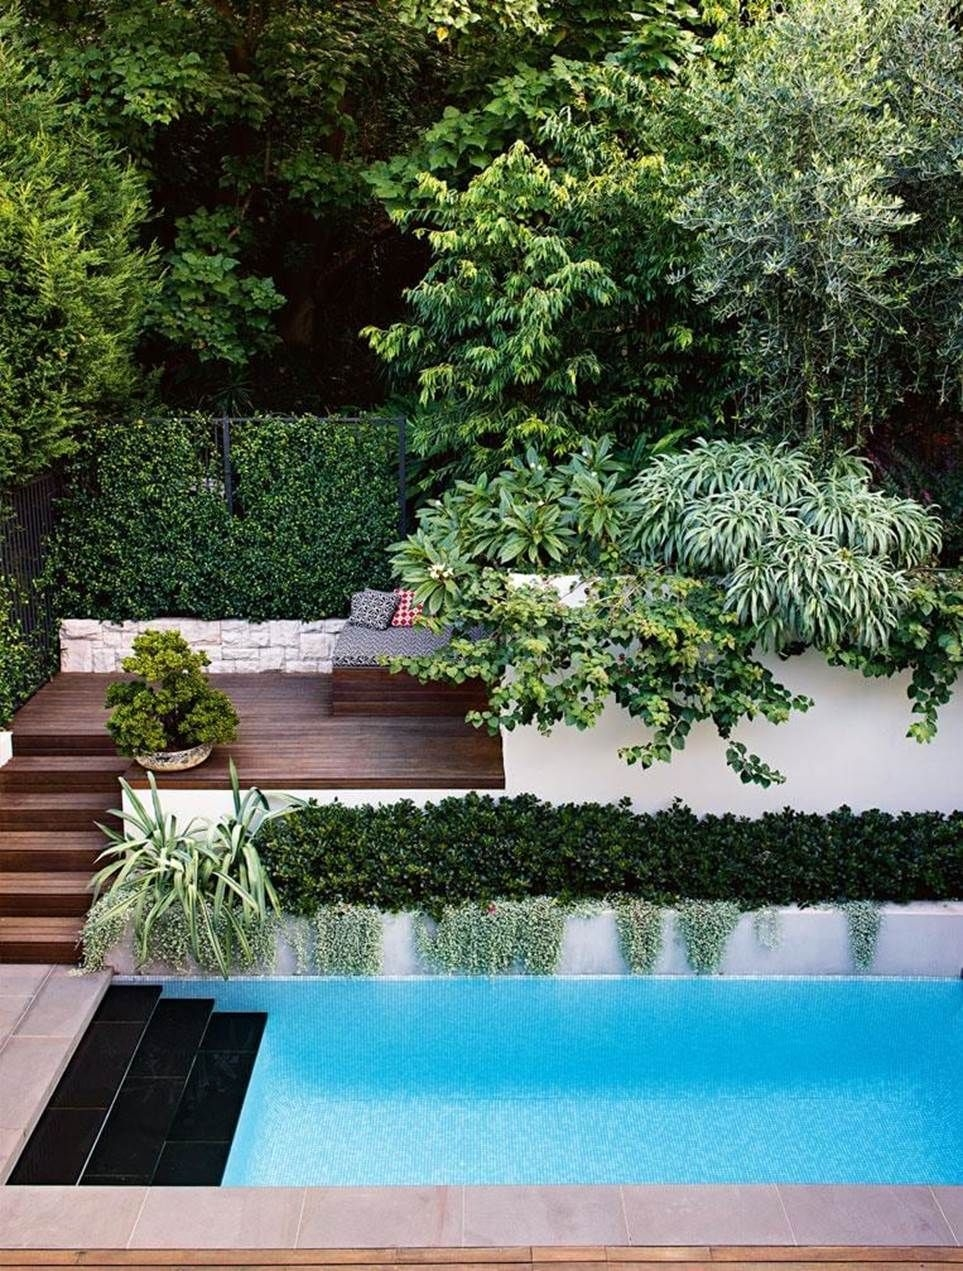 Surprising Tropical Pool Landscaping Design Ideas To Try Soon 45